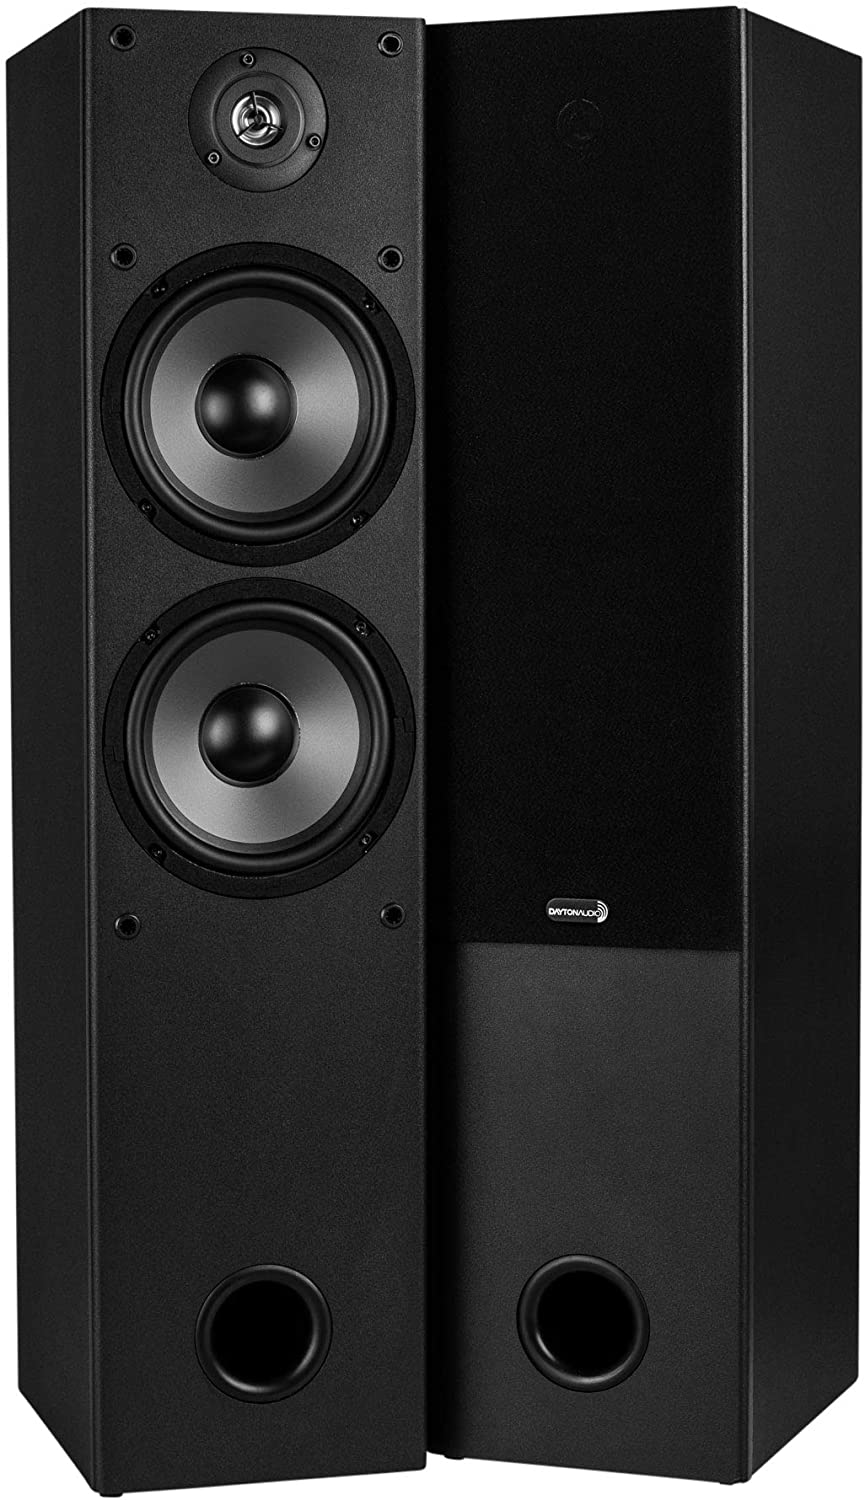 Dayton Audio T652